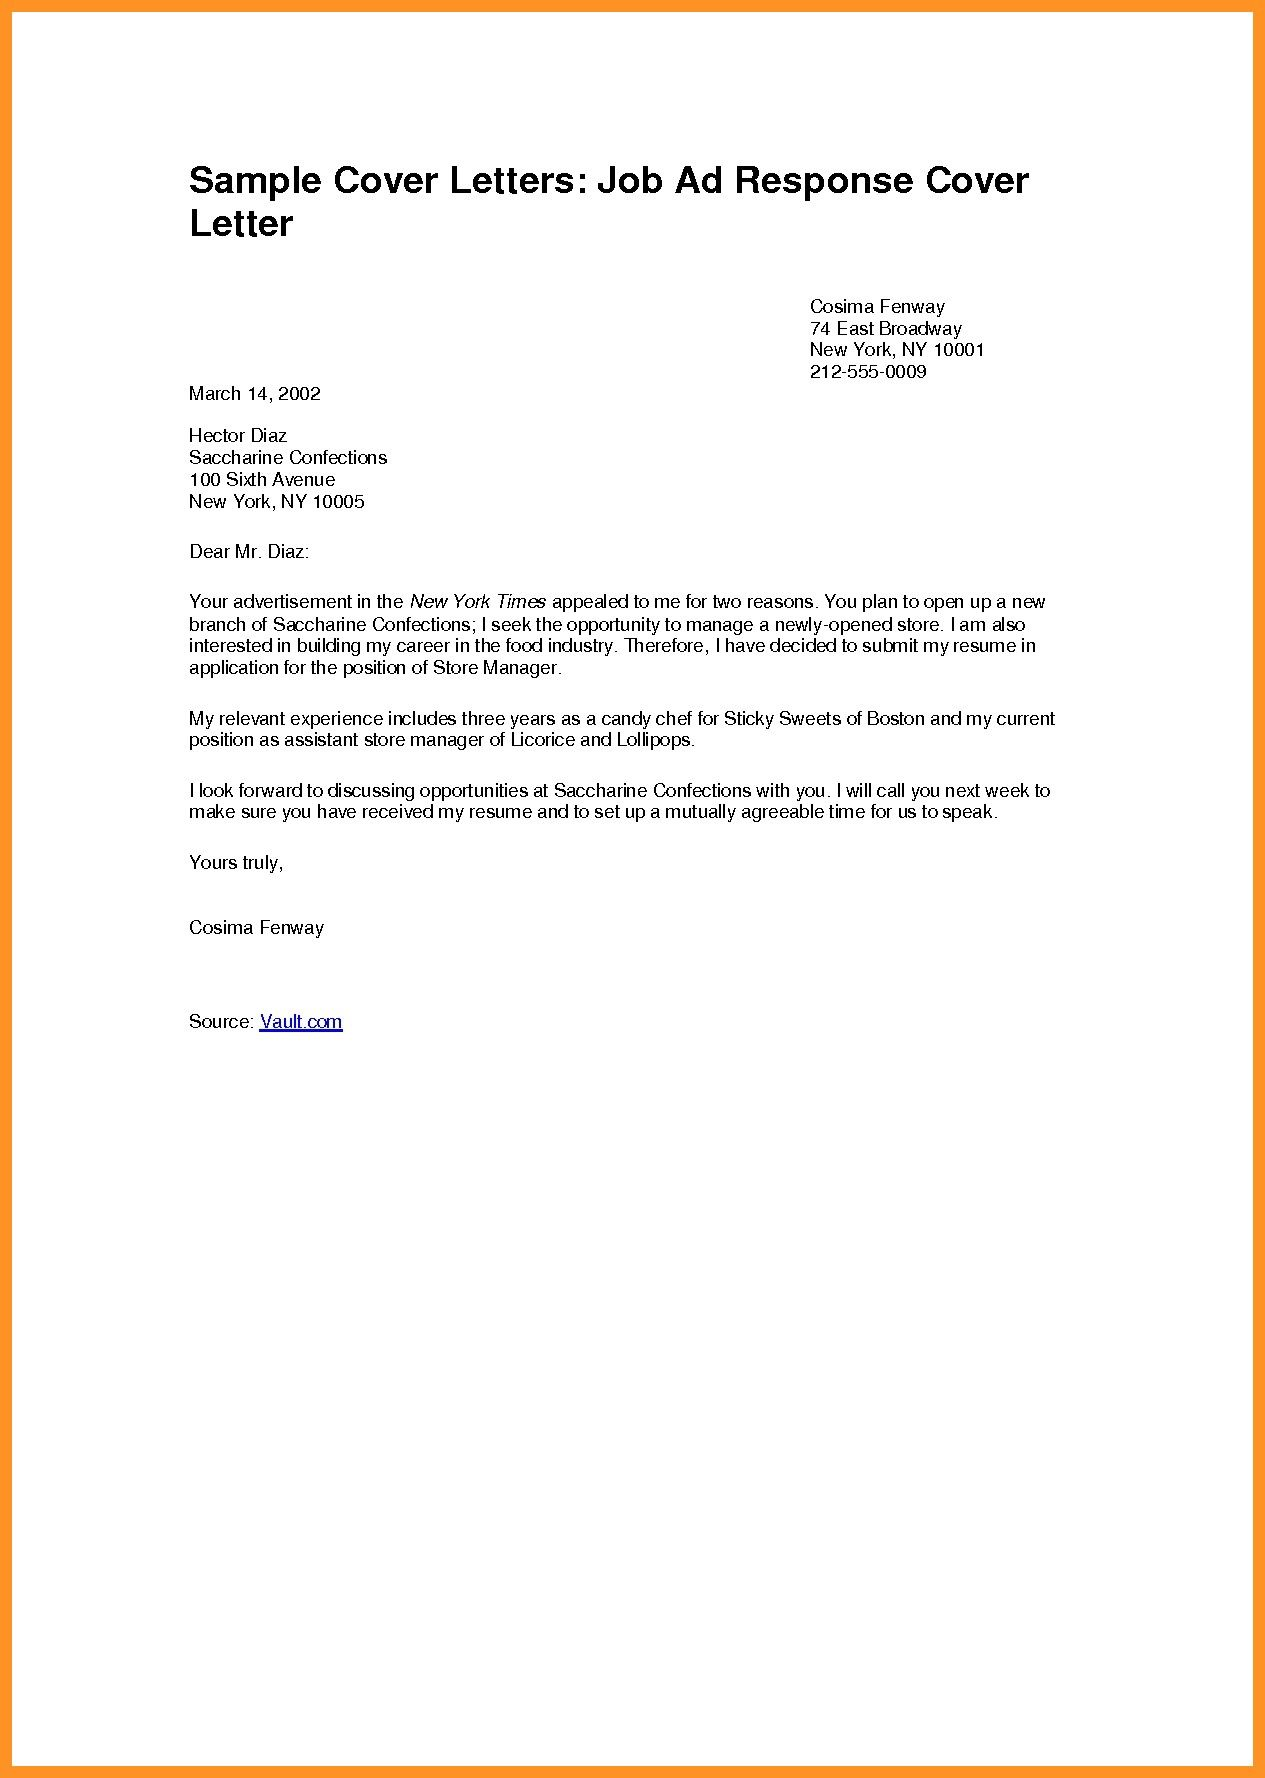 What Is A Job Application Cover Letter   Know It Info